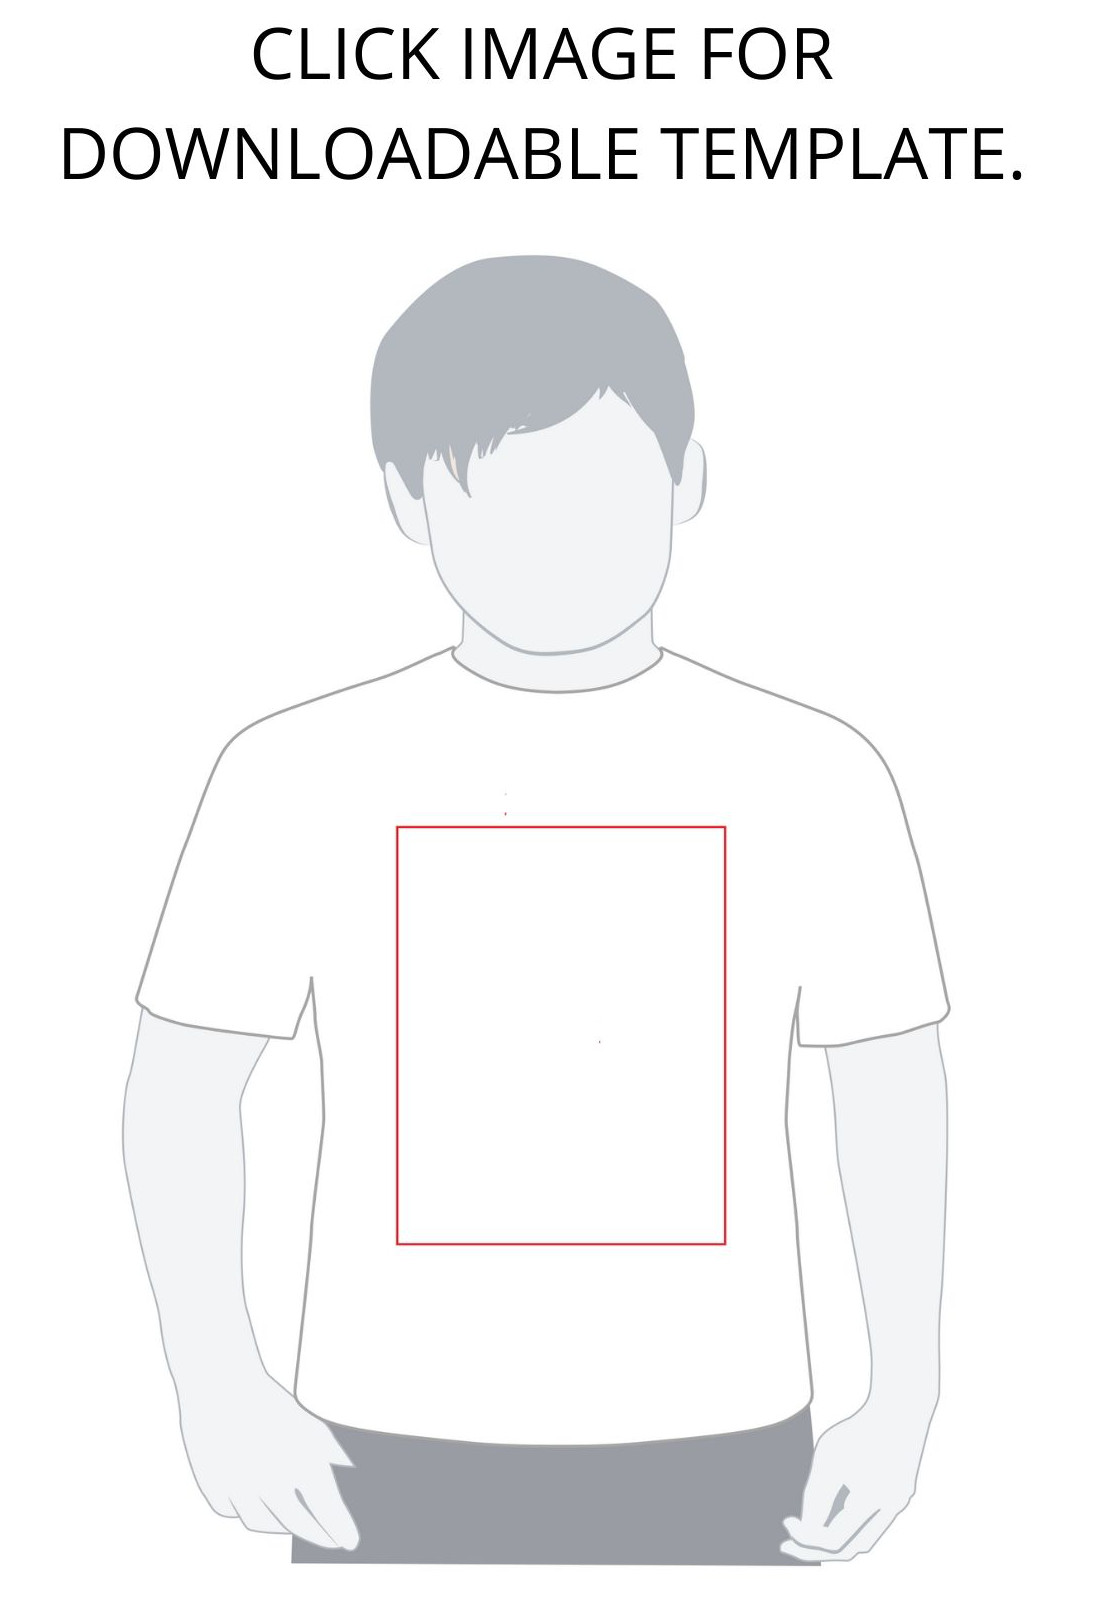 Boys' template for Total Merchandise T-shirt design competition